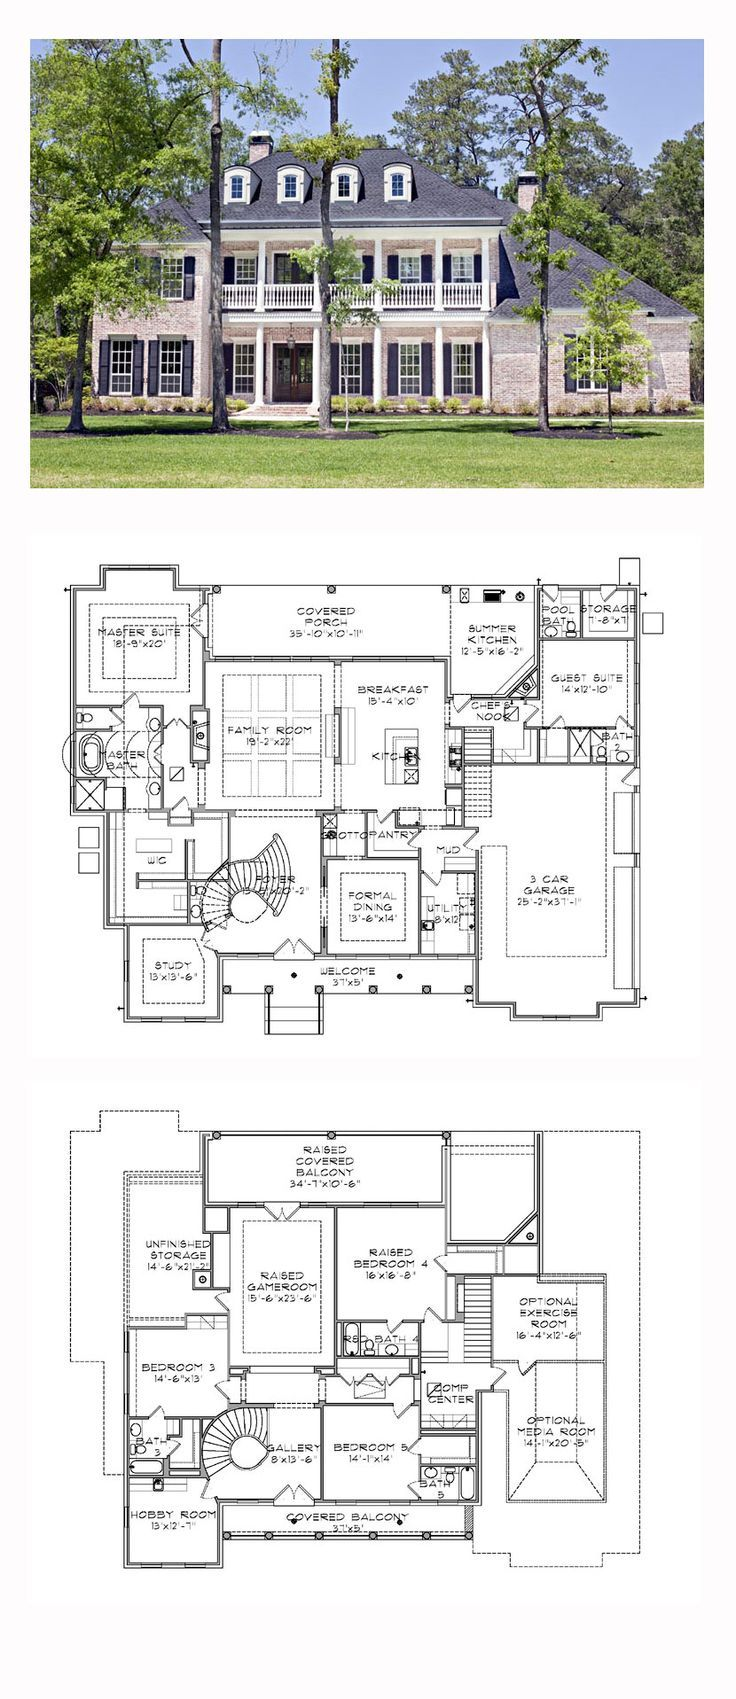 ded3fa6f4b94422230d91ac476cc7896 bedroom house plans dream house ideas bedrooms best 25 dream house plans ideas on pinterest house floor plans Barbie Dreamhouse at bayanpartner.co